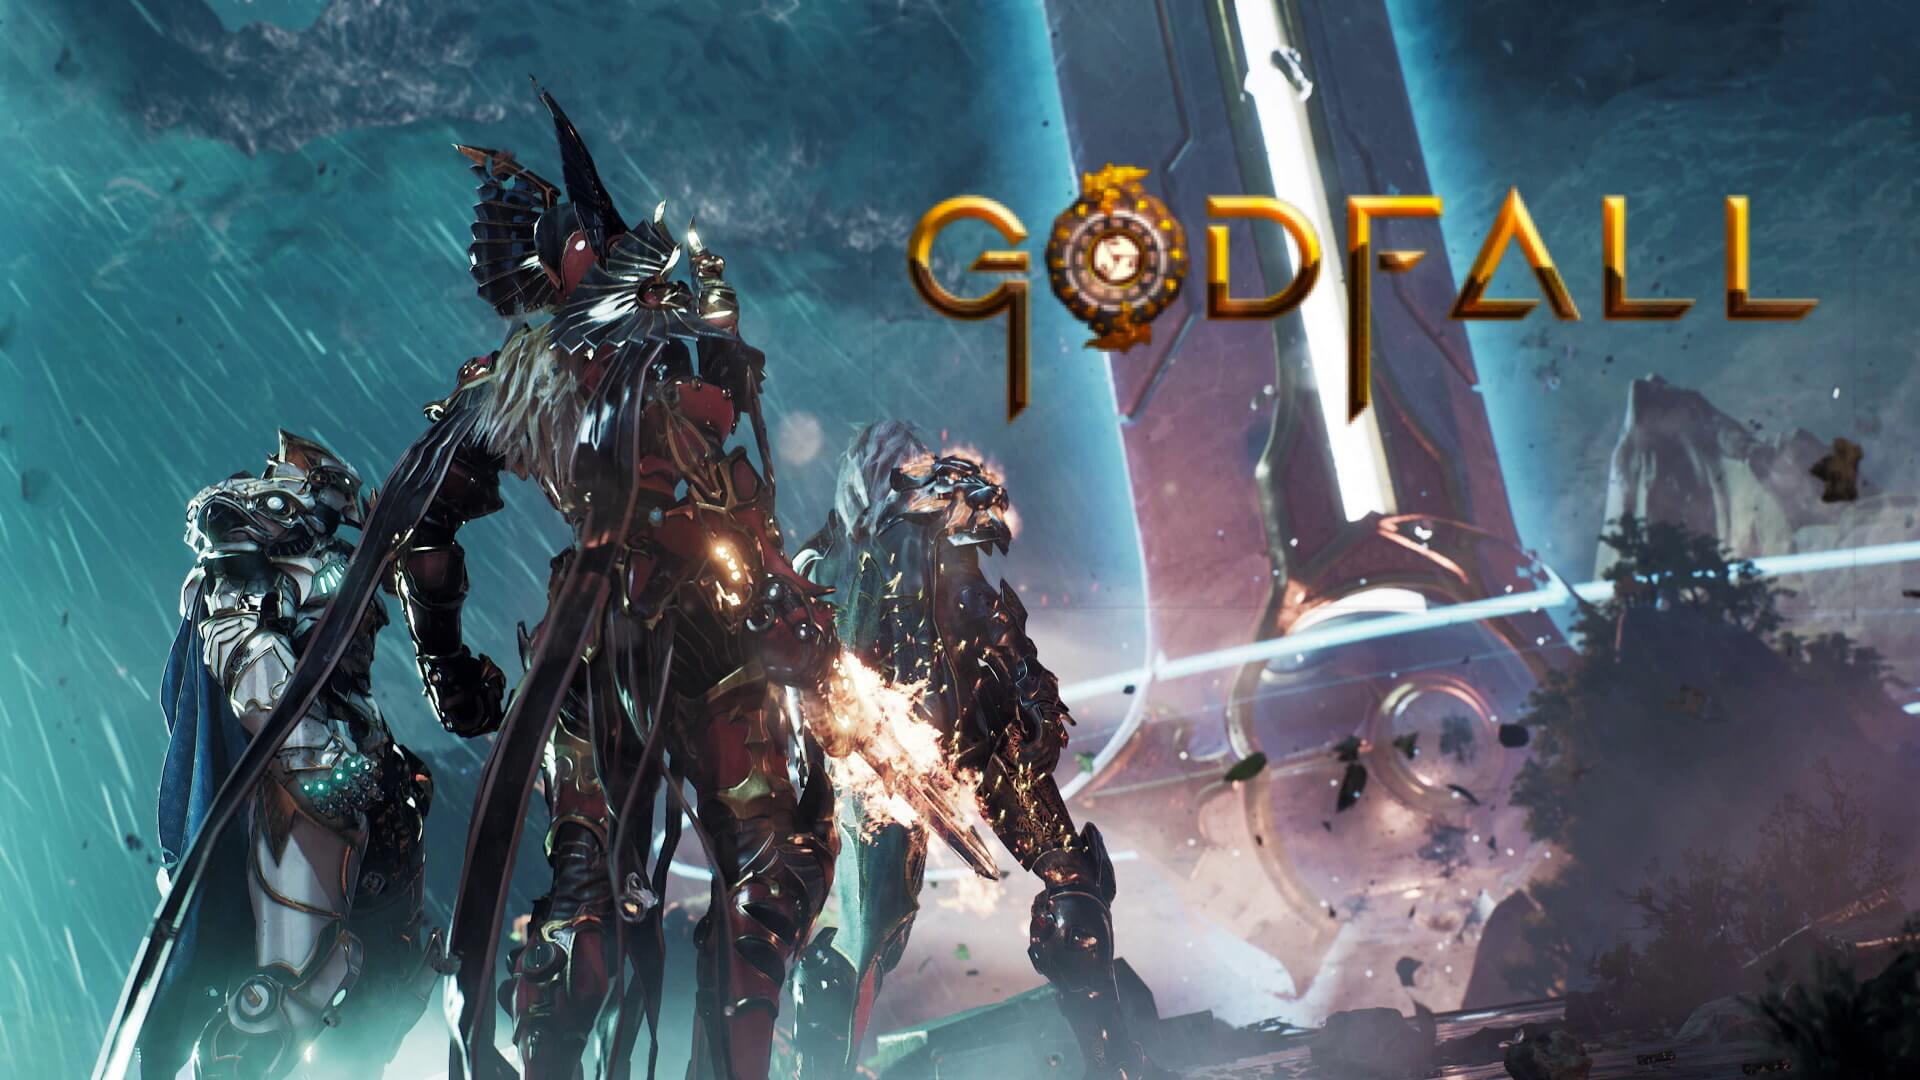 New Details About Godfall, The First PS5 Exclusive Title